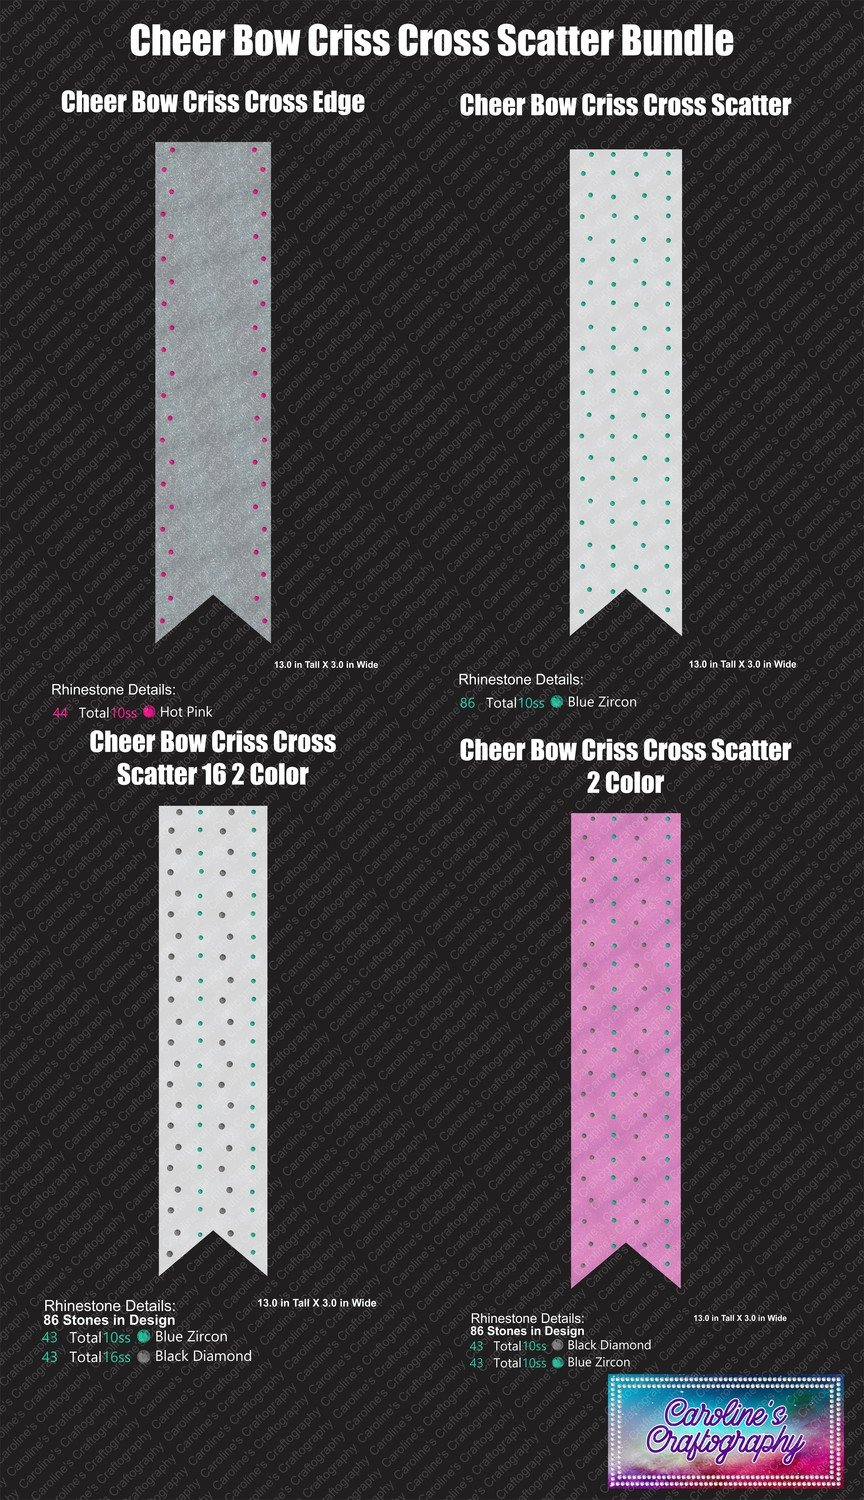 Cheer Bow Criss Cross Scatters Bundle